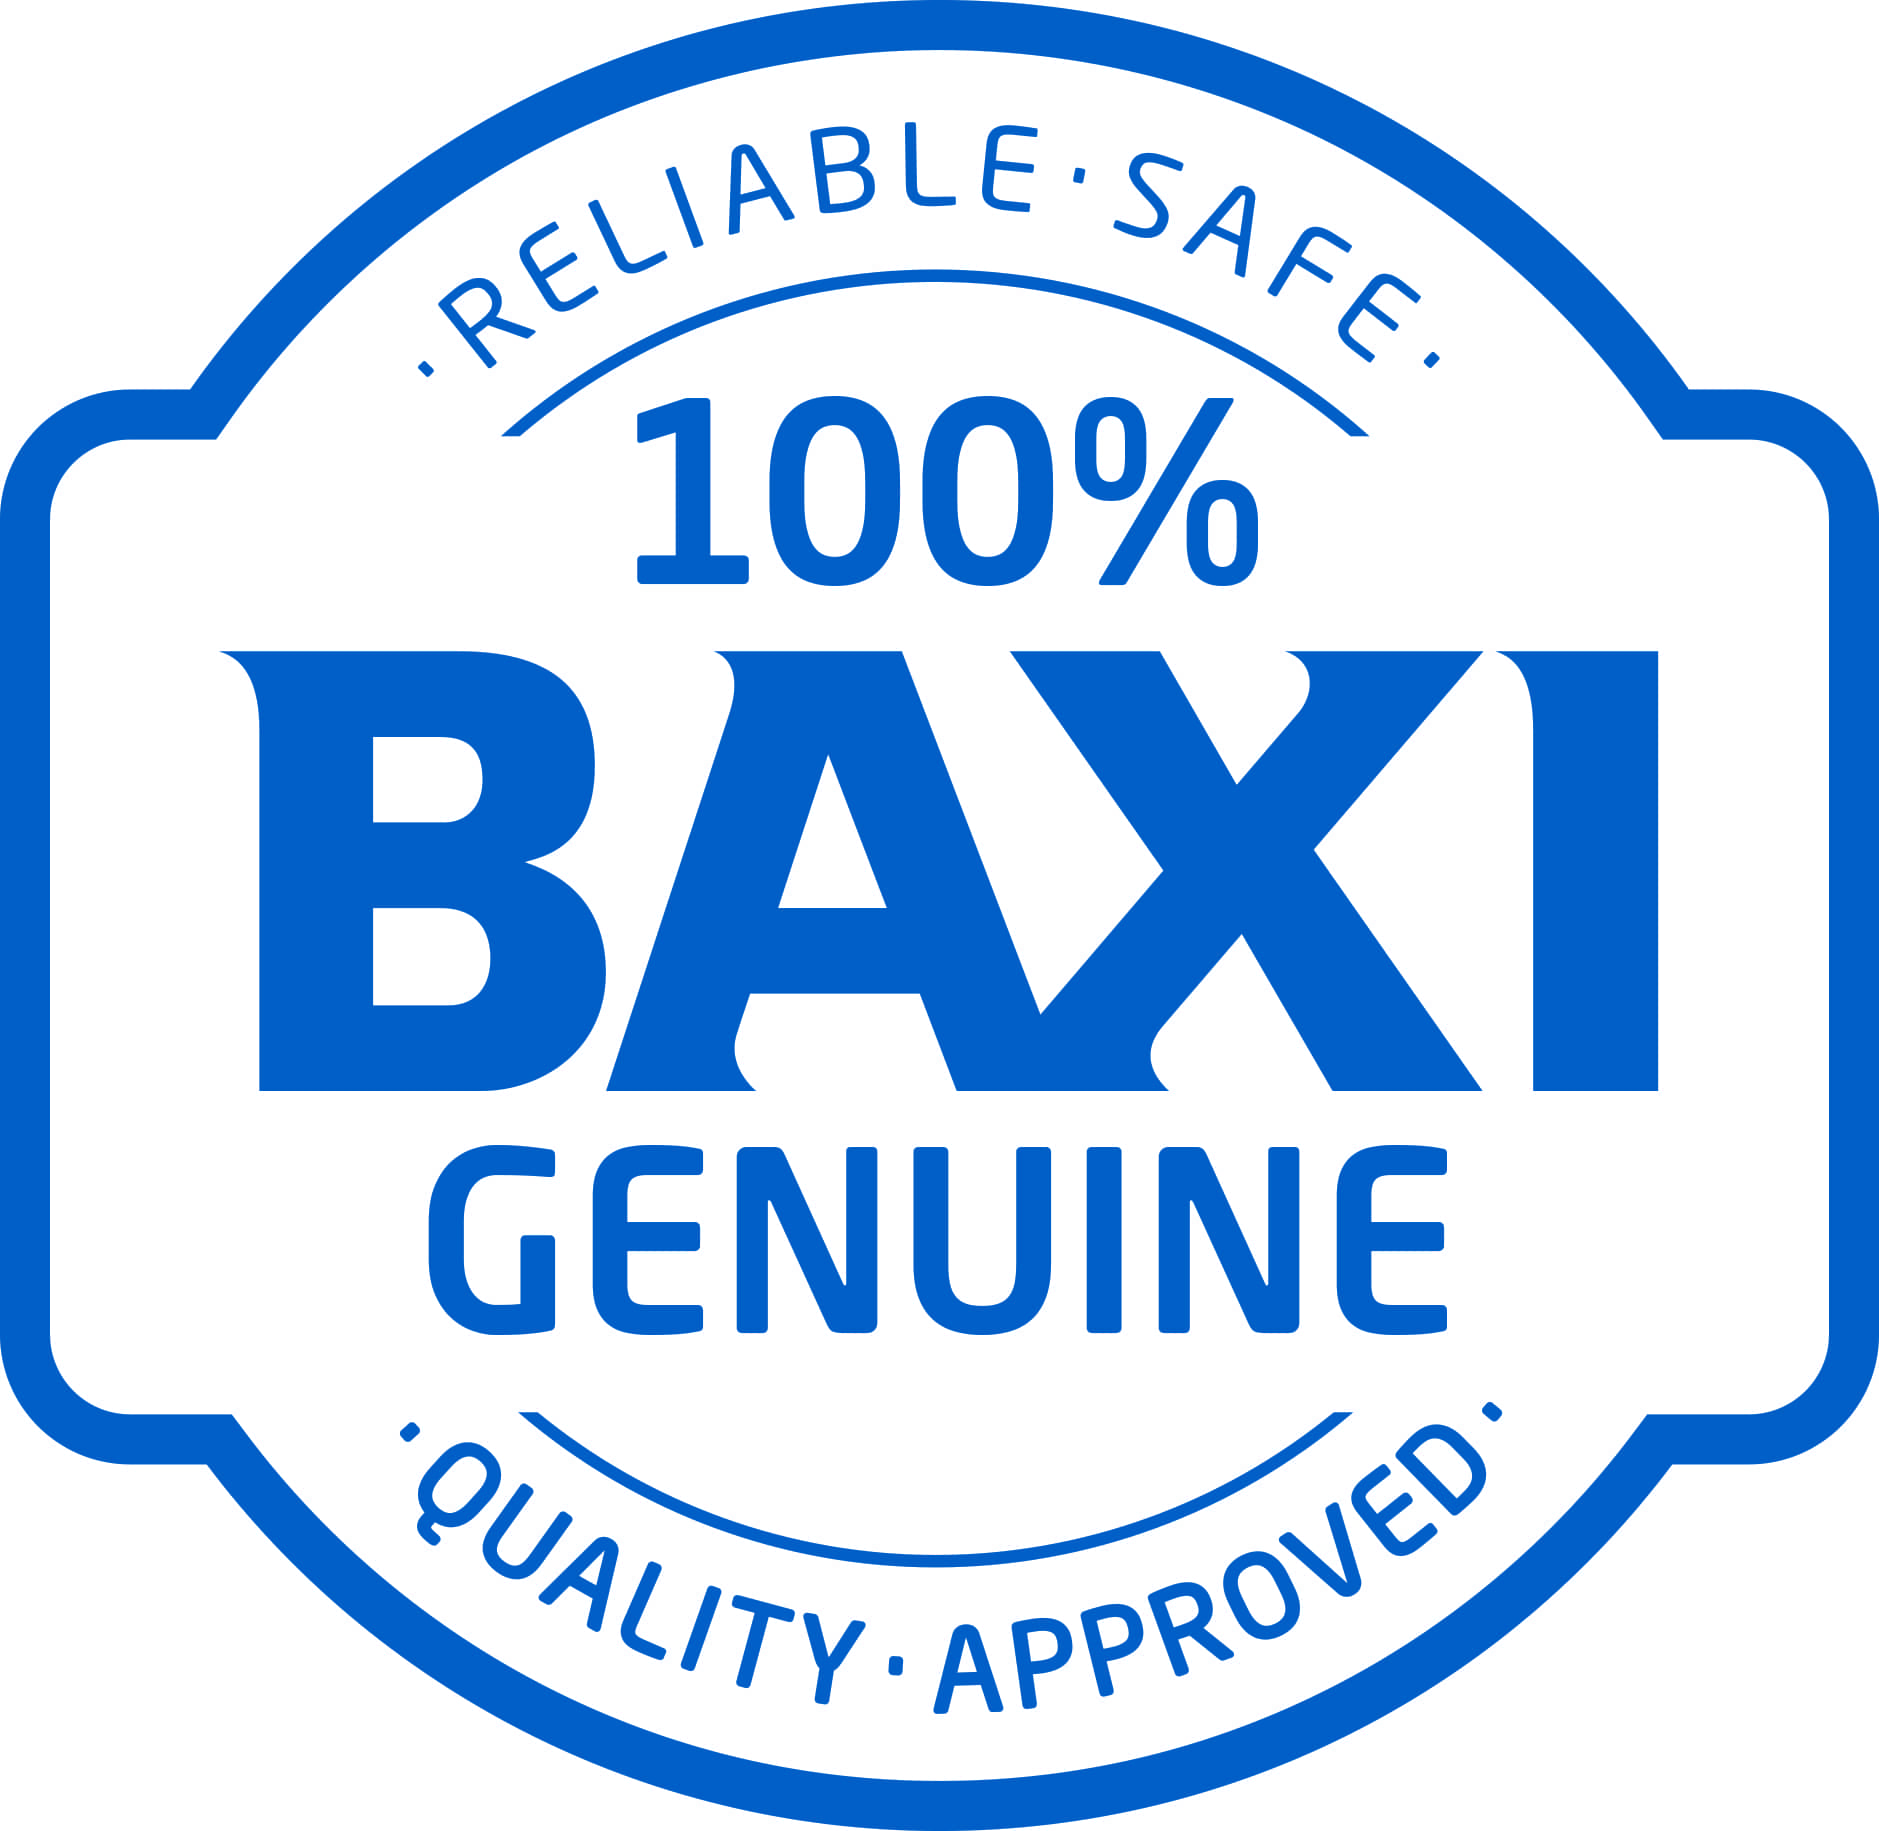 Baxi Genuine Parts stamp